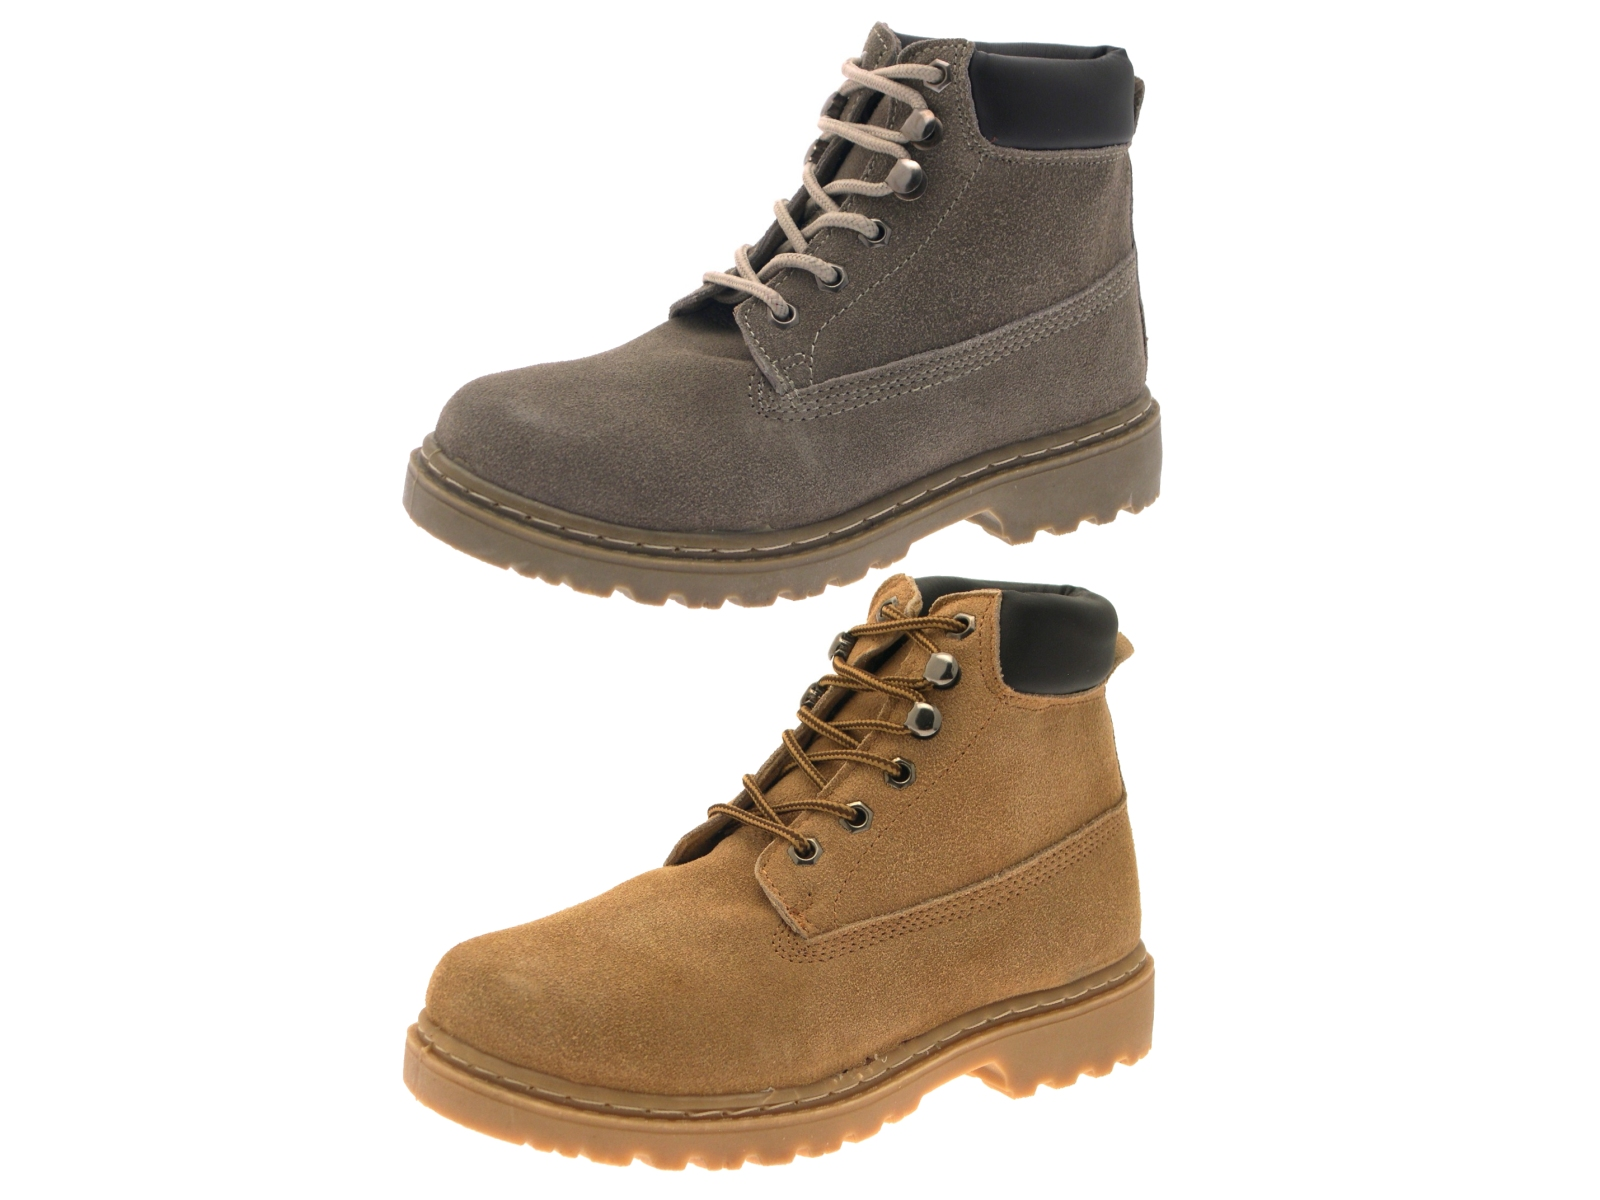 boys kids mens desert ankle boots lace up faux suede casual shoes size uk 13 6 ebay. Black Bedroom Furniture Sets. Home Design Ideas